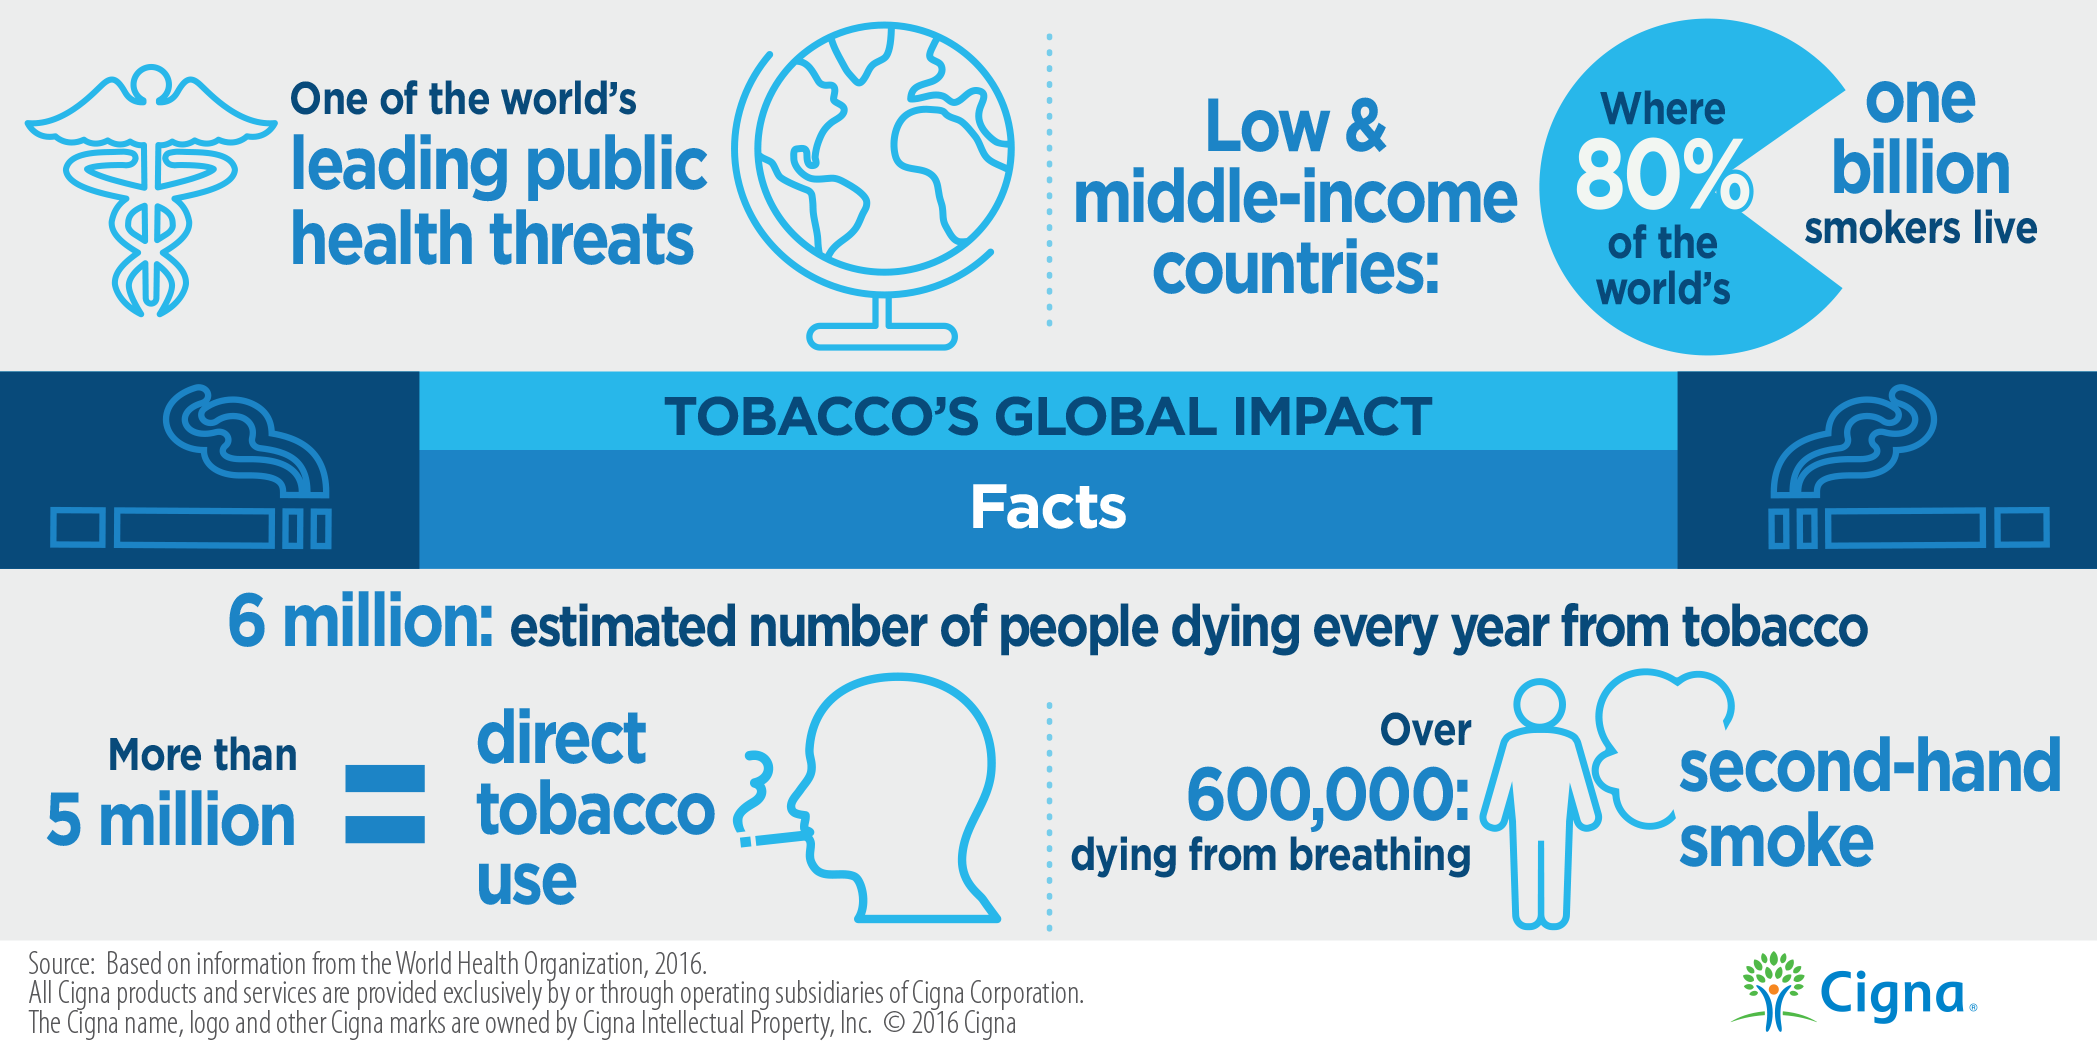 Tobacco Facts Infographic